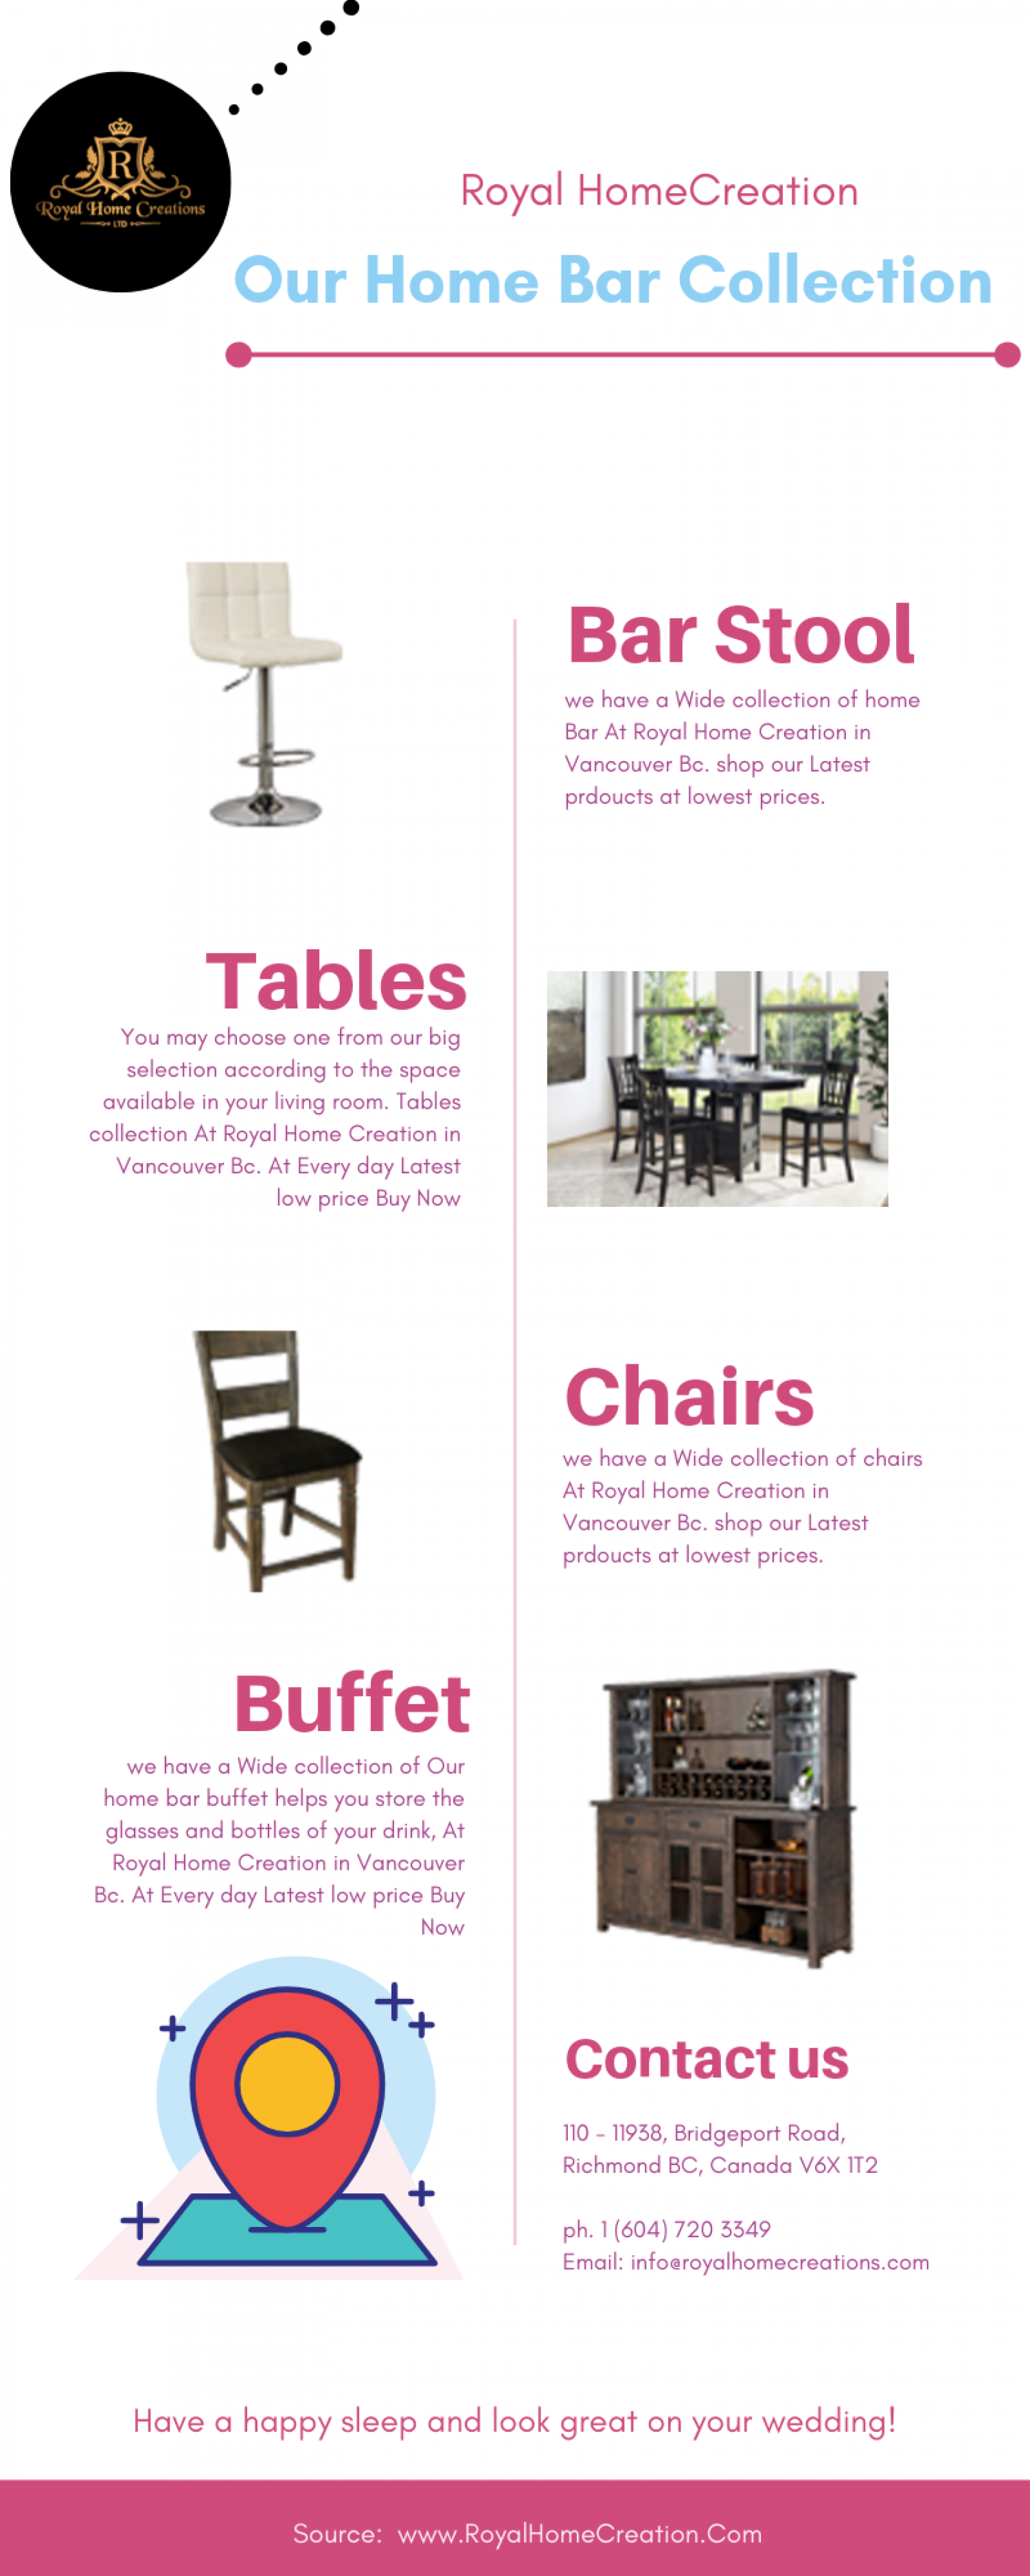 Buy Home Bars Furniture in Vancouver | Royal Home Creations Infographic